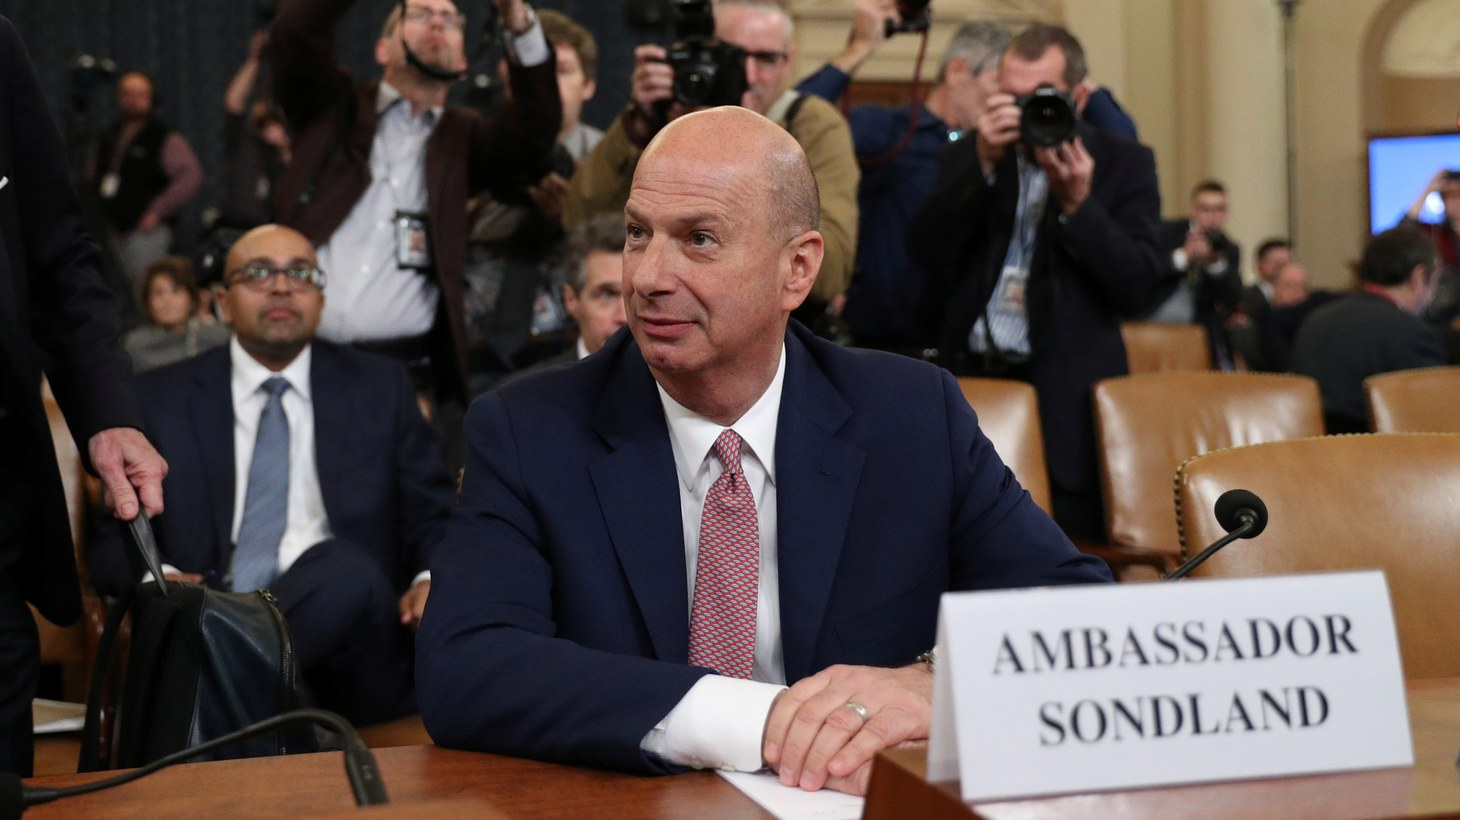 U.S. Ambassador to the European Union Gordon Sondland attends a House Intelligence Committee hearing as part of the impeachment inquiry into U.S. President Donald Trump on Capitol Hill in Washington, U.S., November 20, 2019.